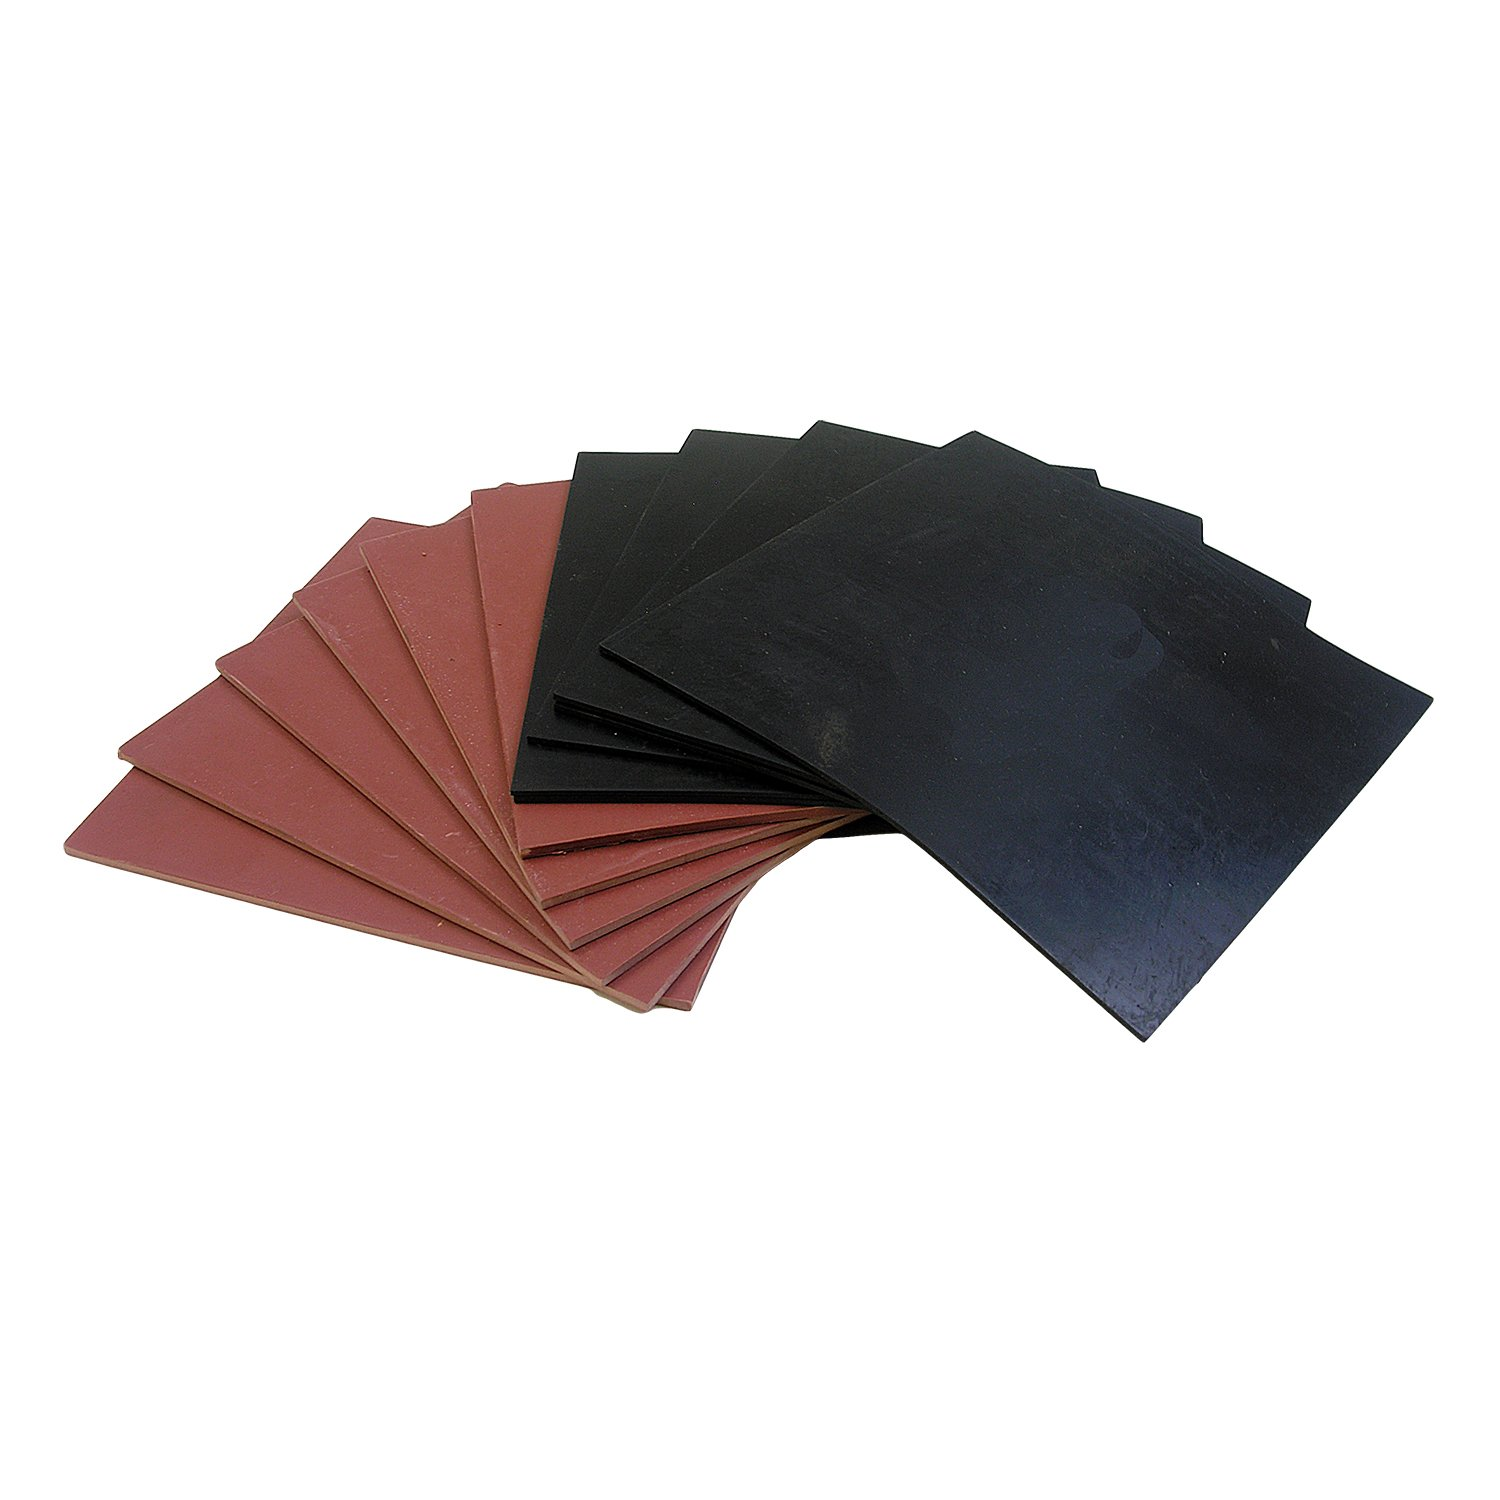 LASCO 02 1048 Rubber Sheets 6 Inch X 6 Inch 12 Pack